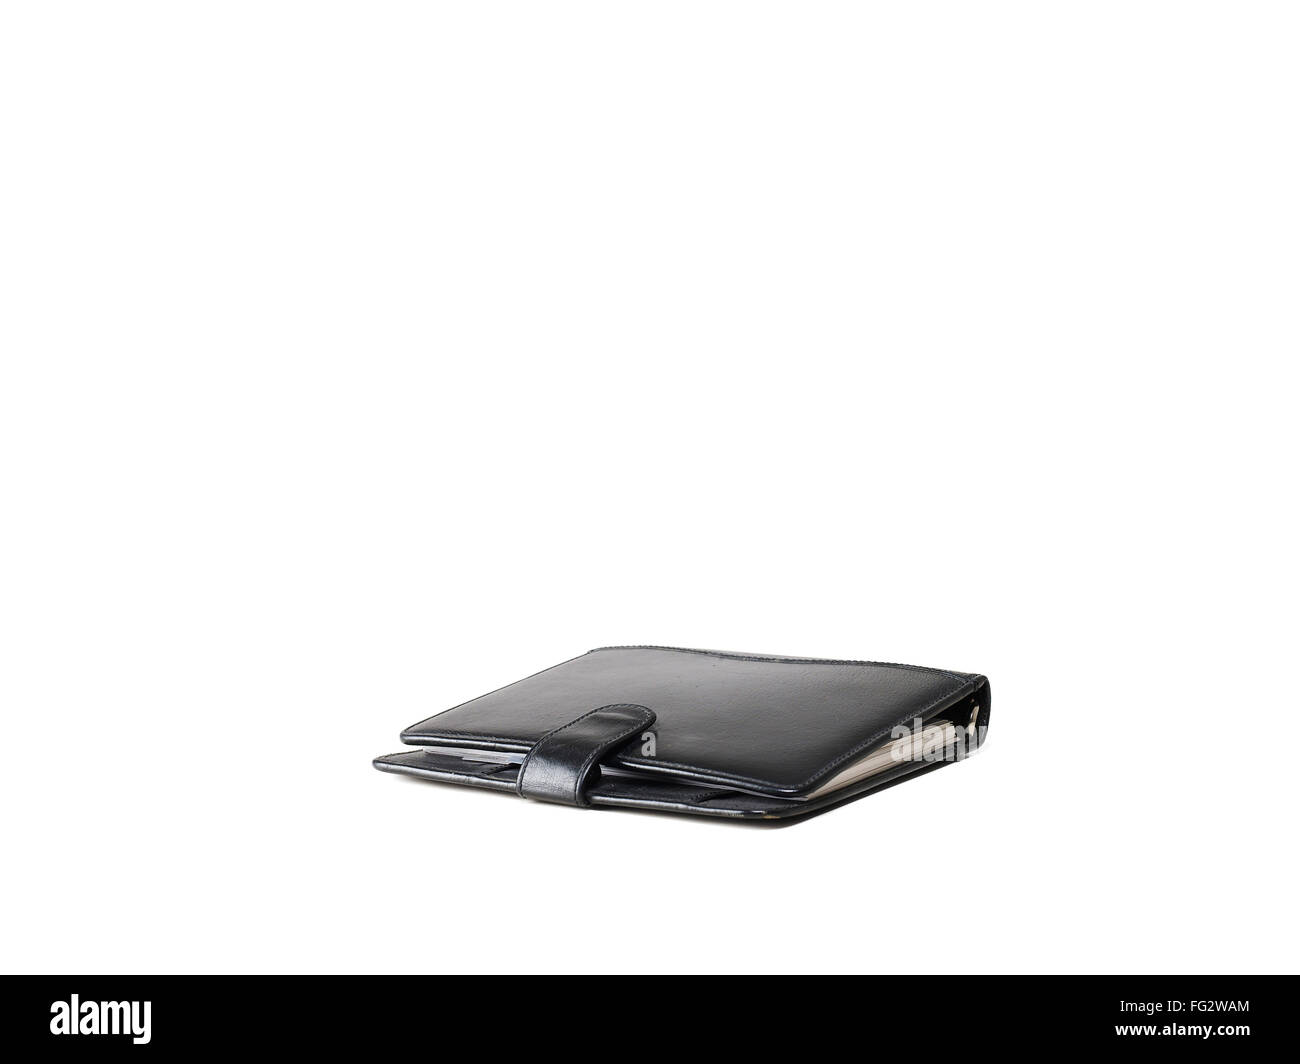 Leather diary on white background - Stock Image